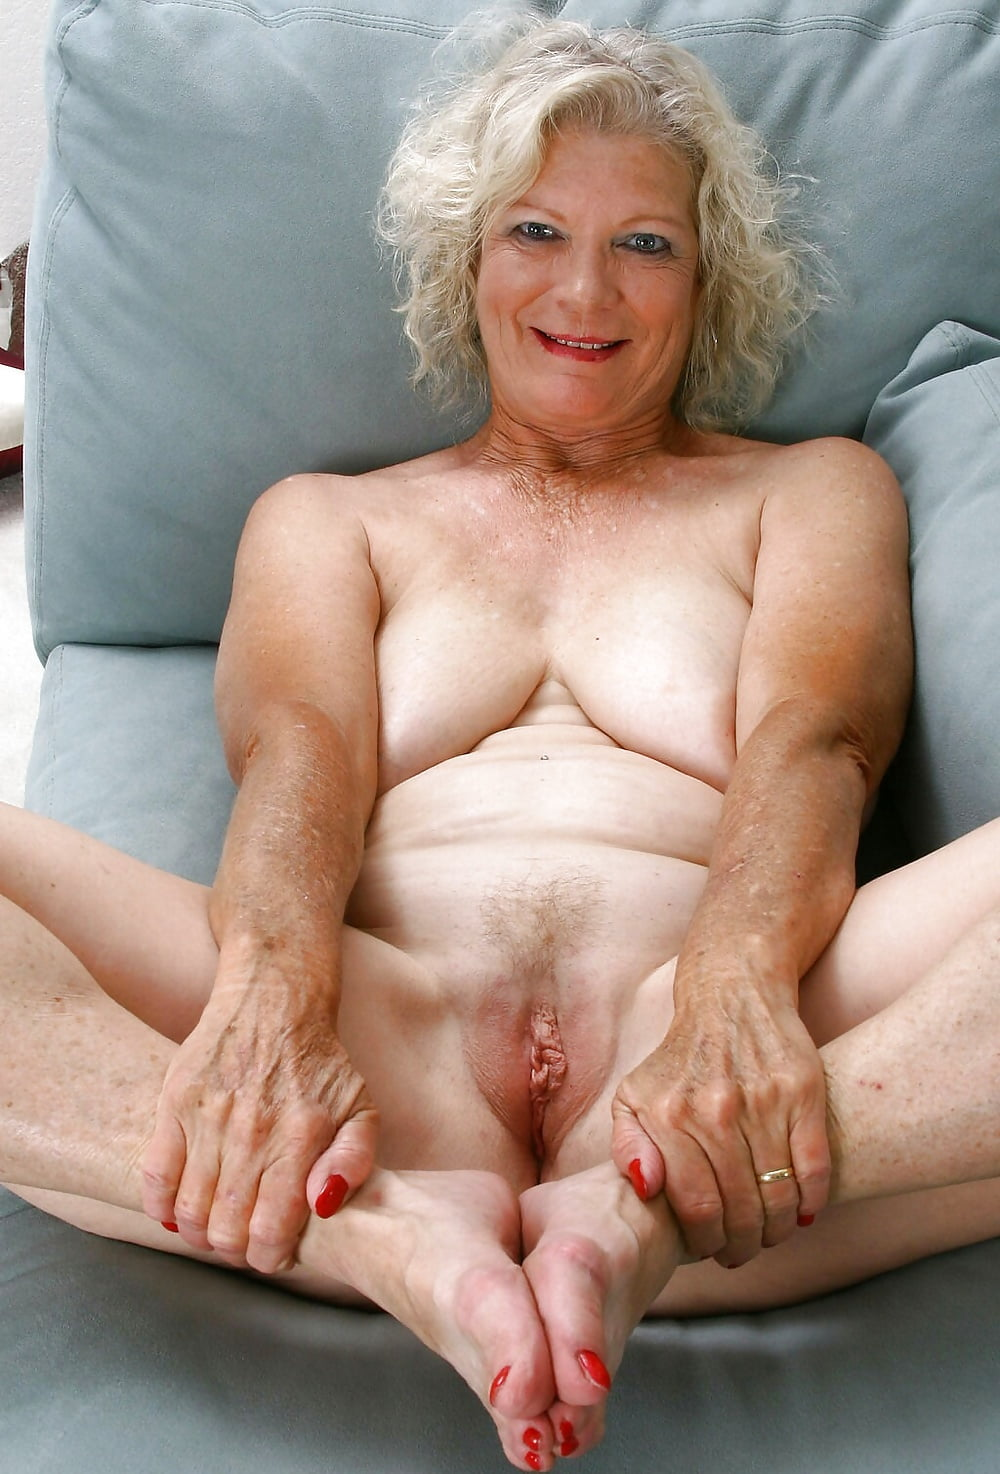 Pictures of old women porn